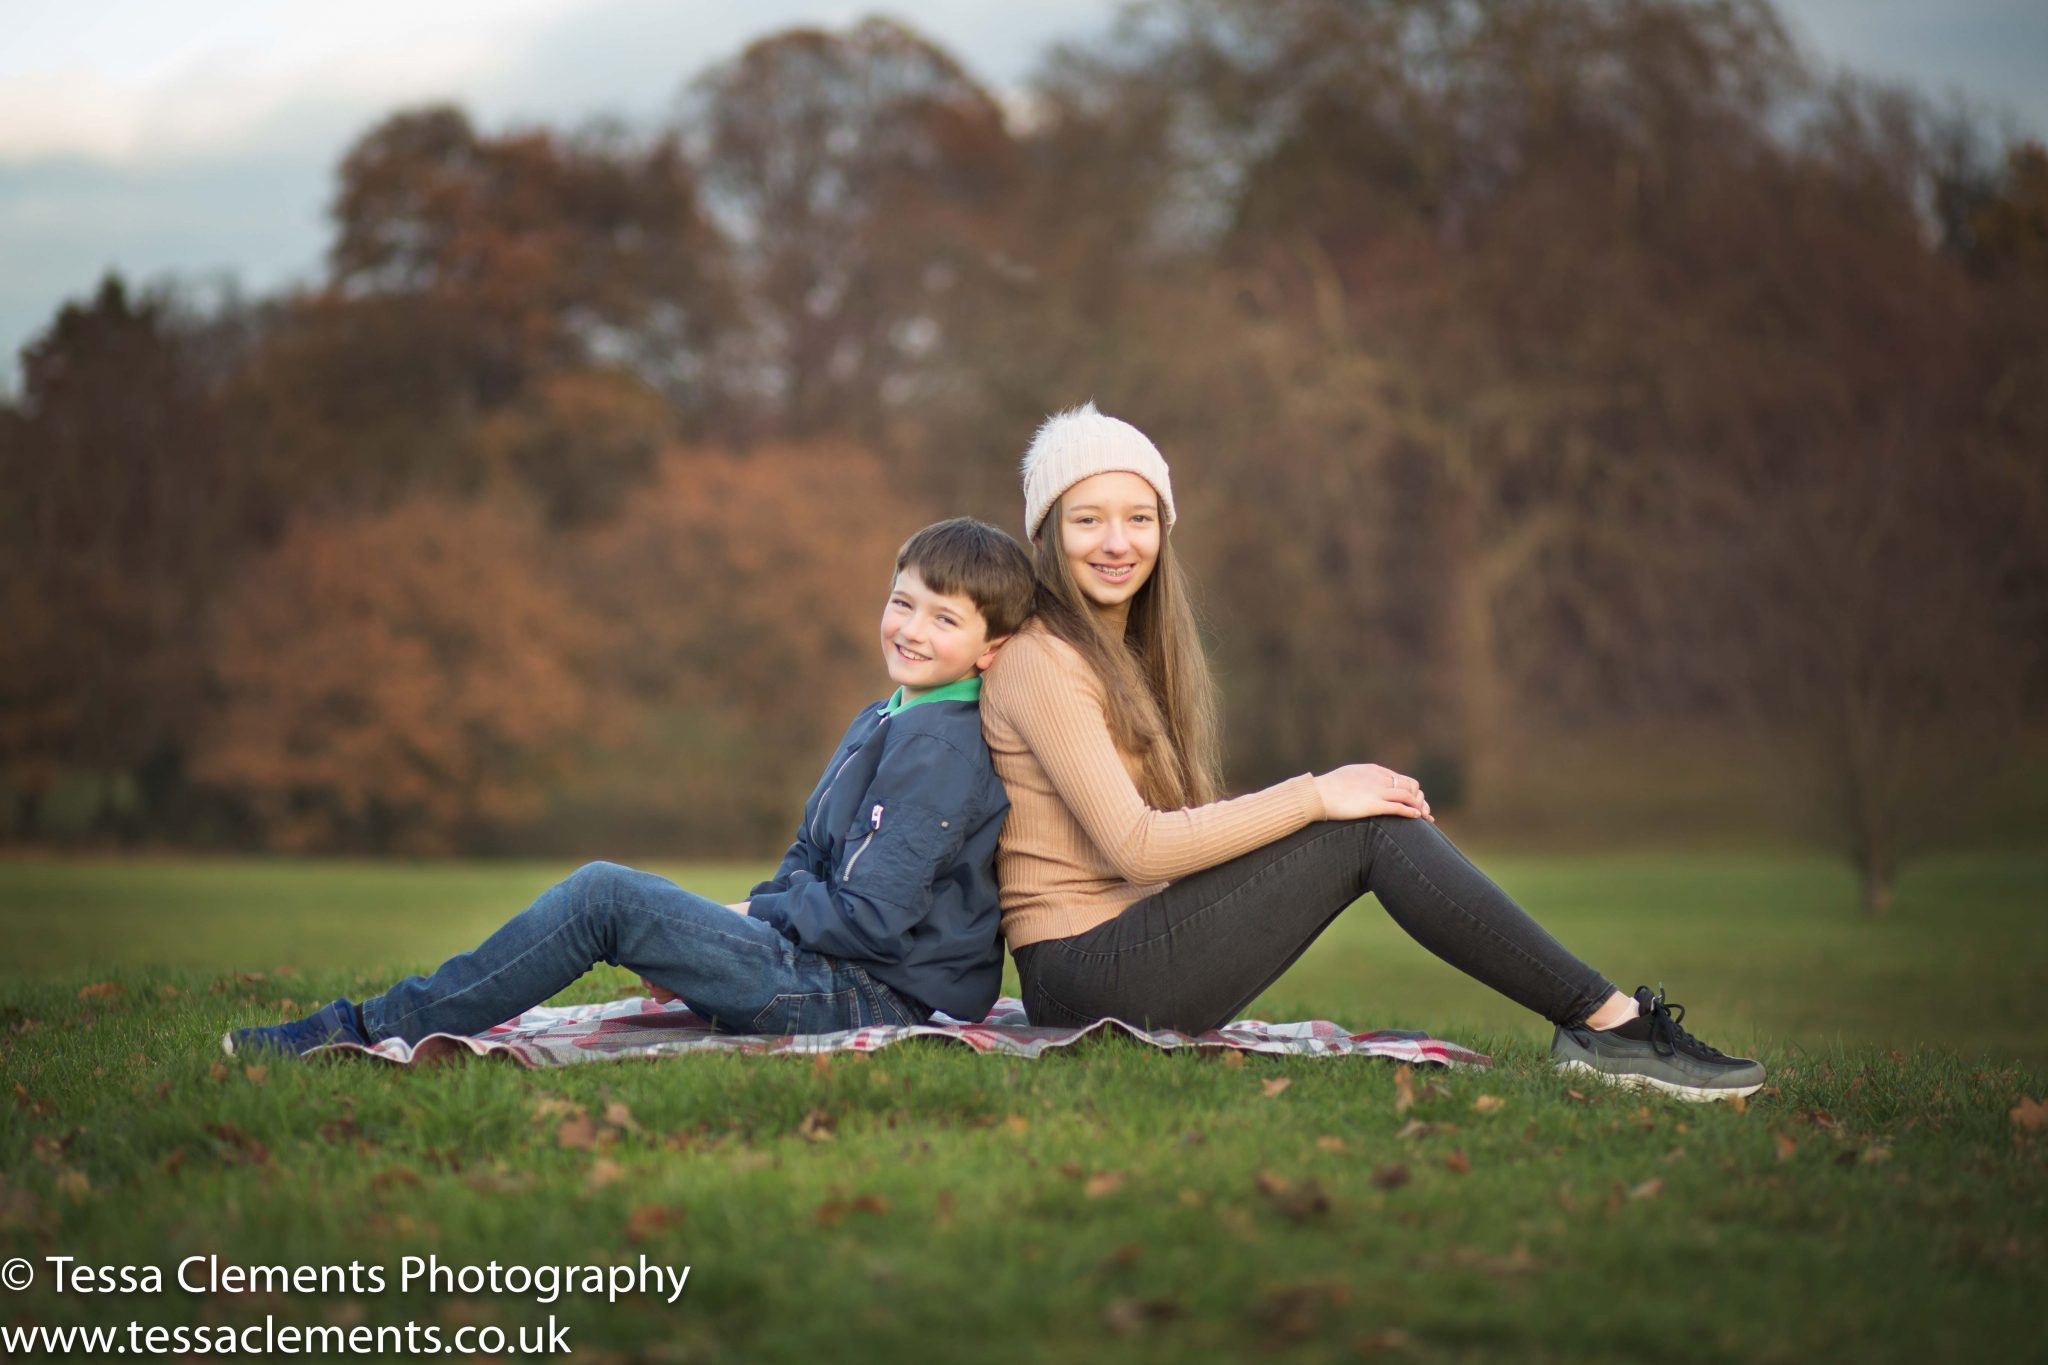 Family photographer near me Beckenham